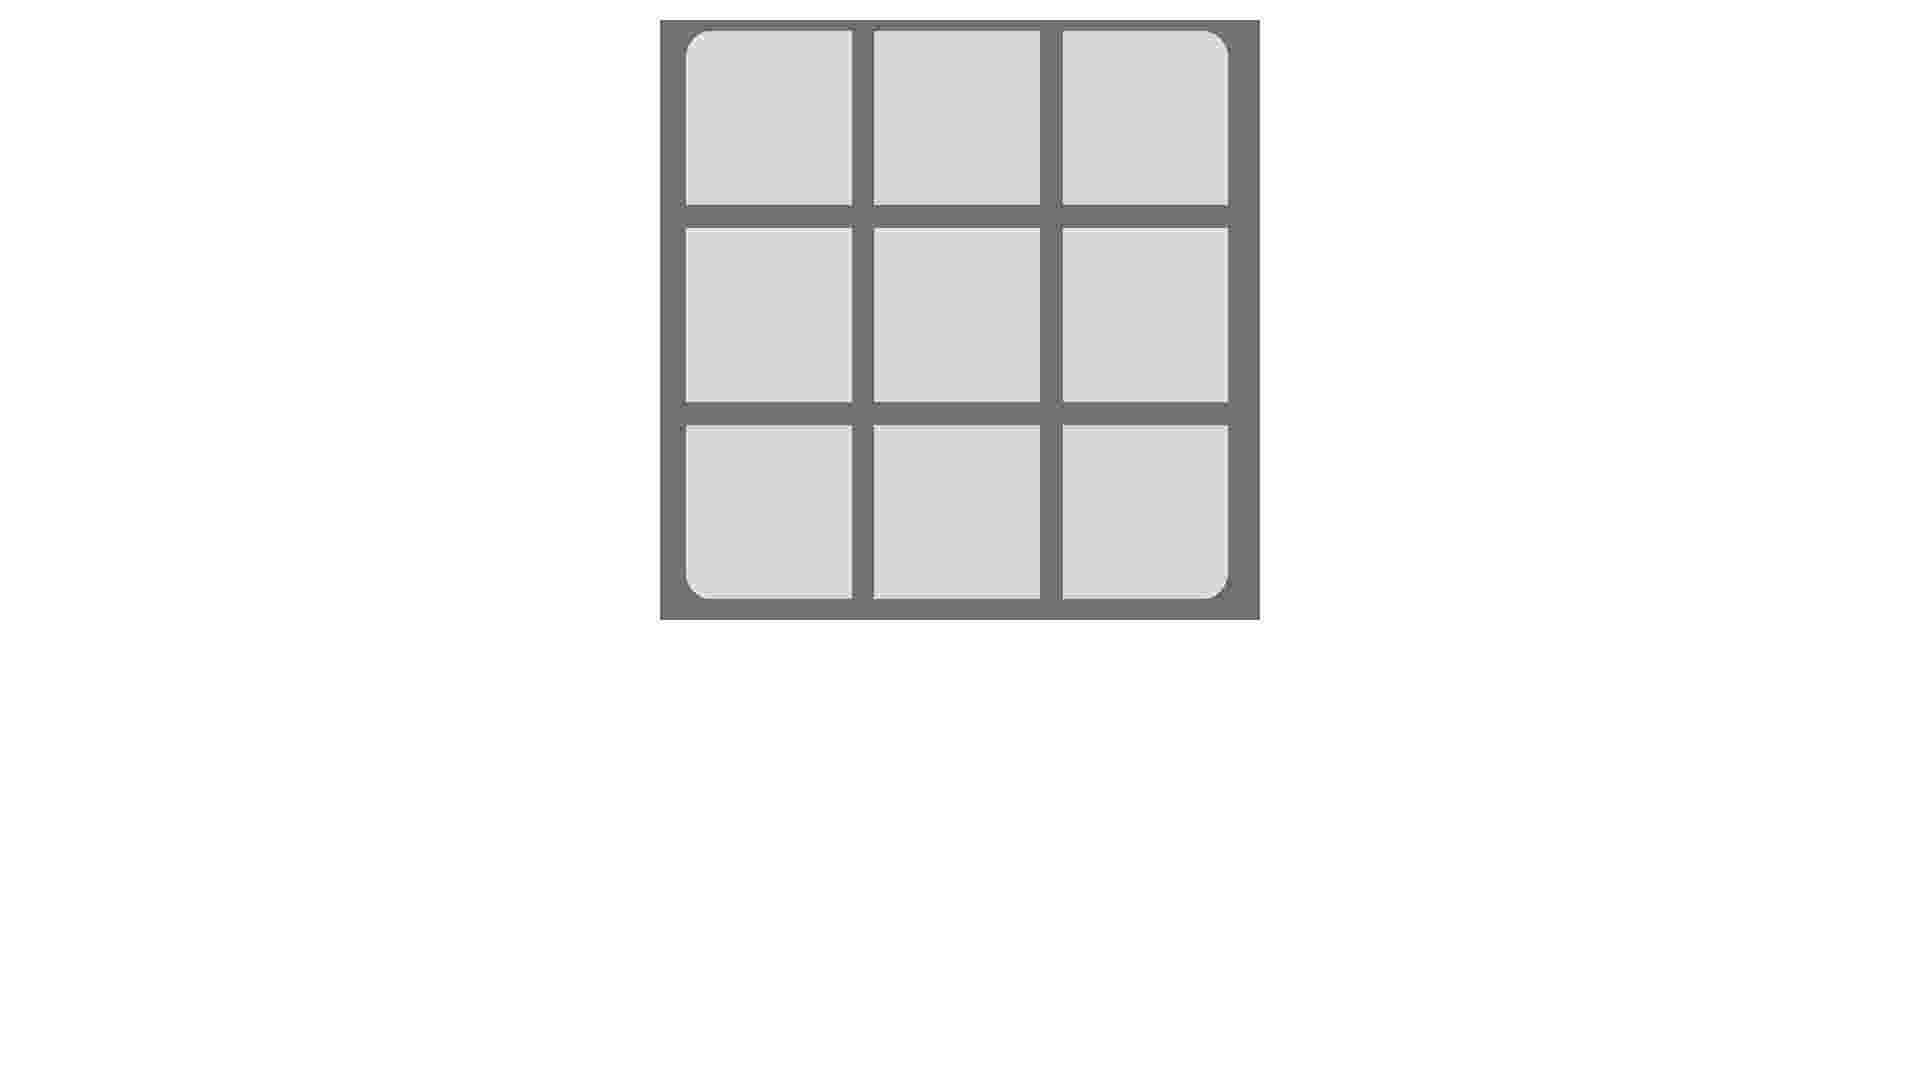 Tic-Tac-Toe (but without canvas)